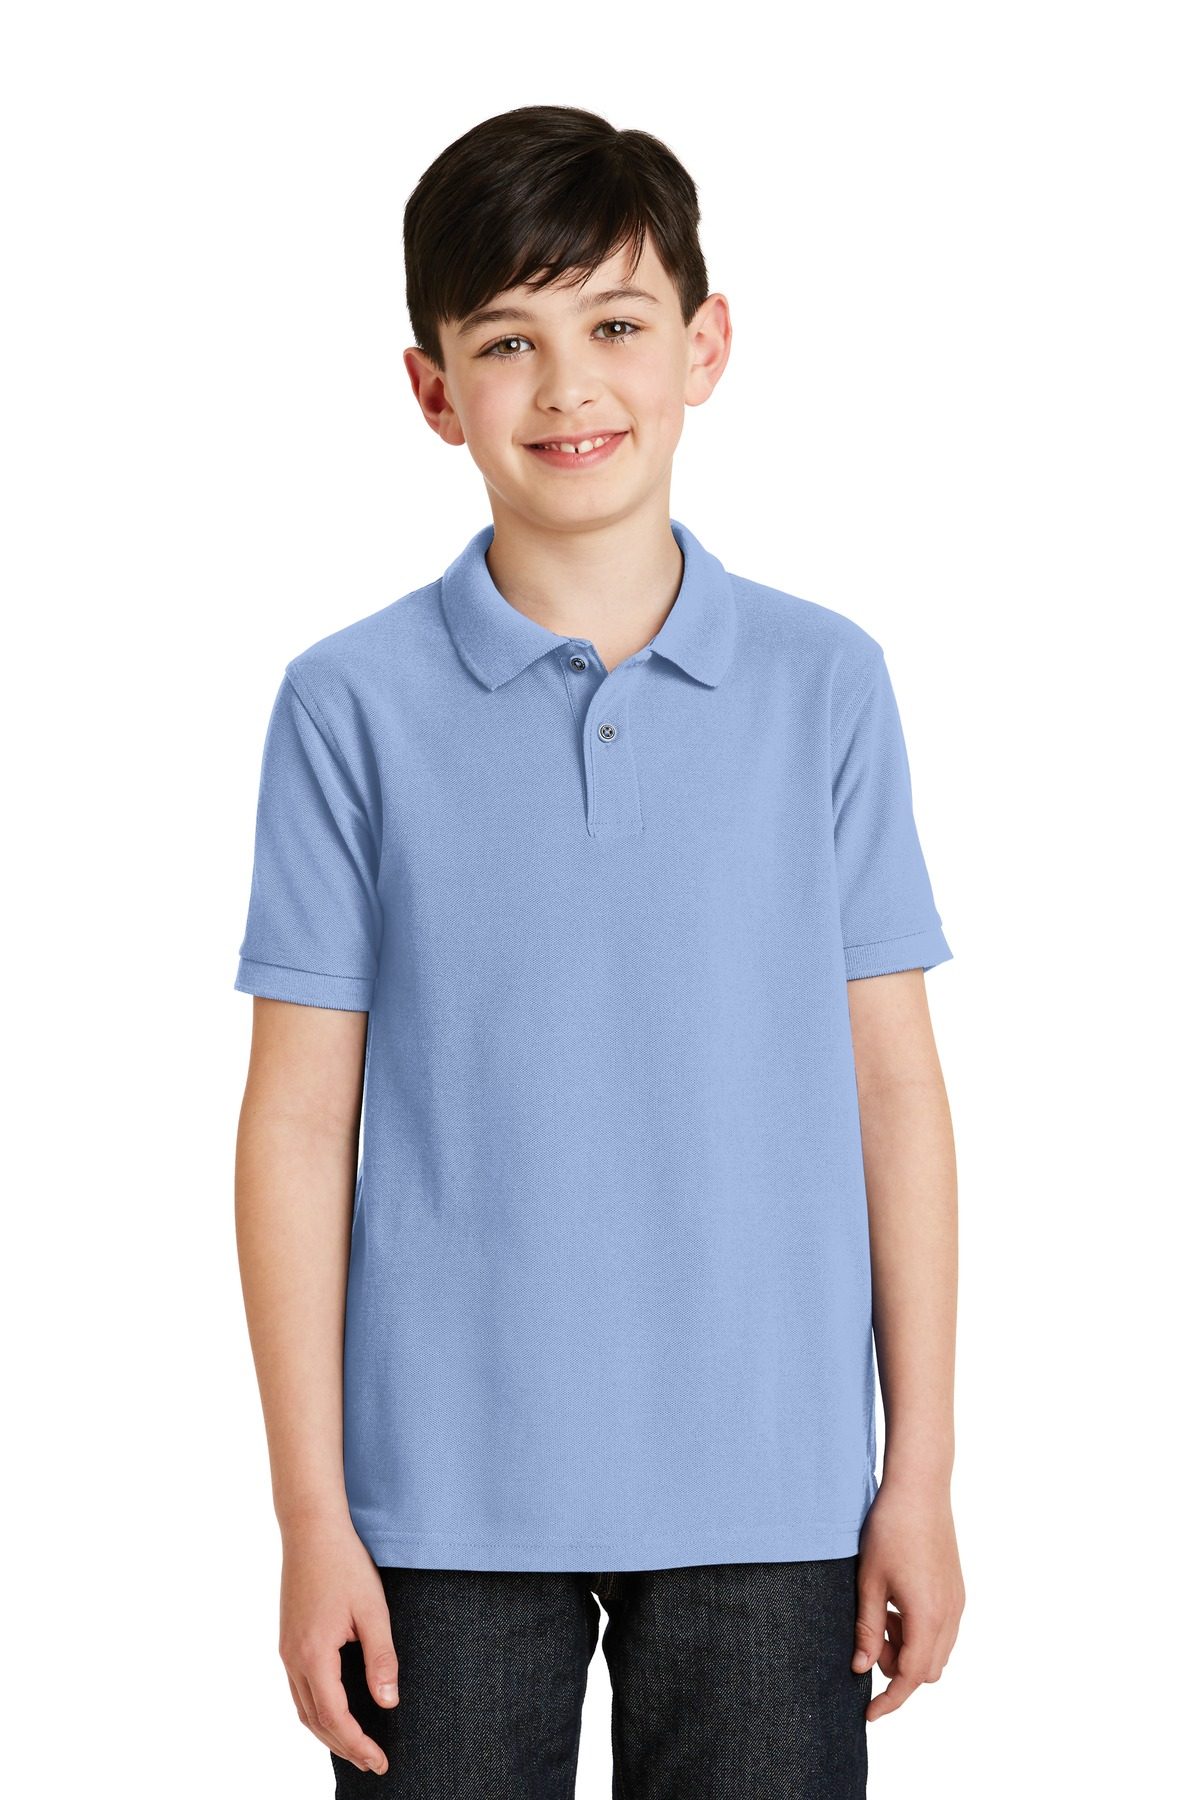 Port Authority ®  Youth Silk Touch™ Polo.  Y500 - Light Blue